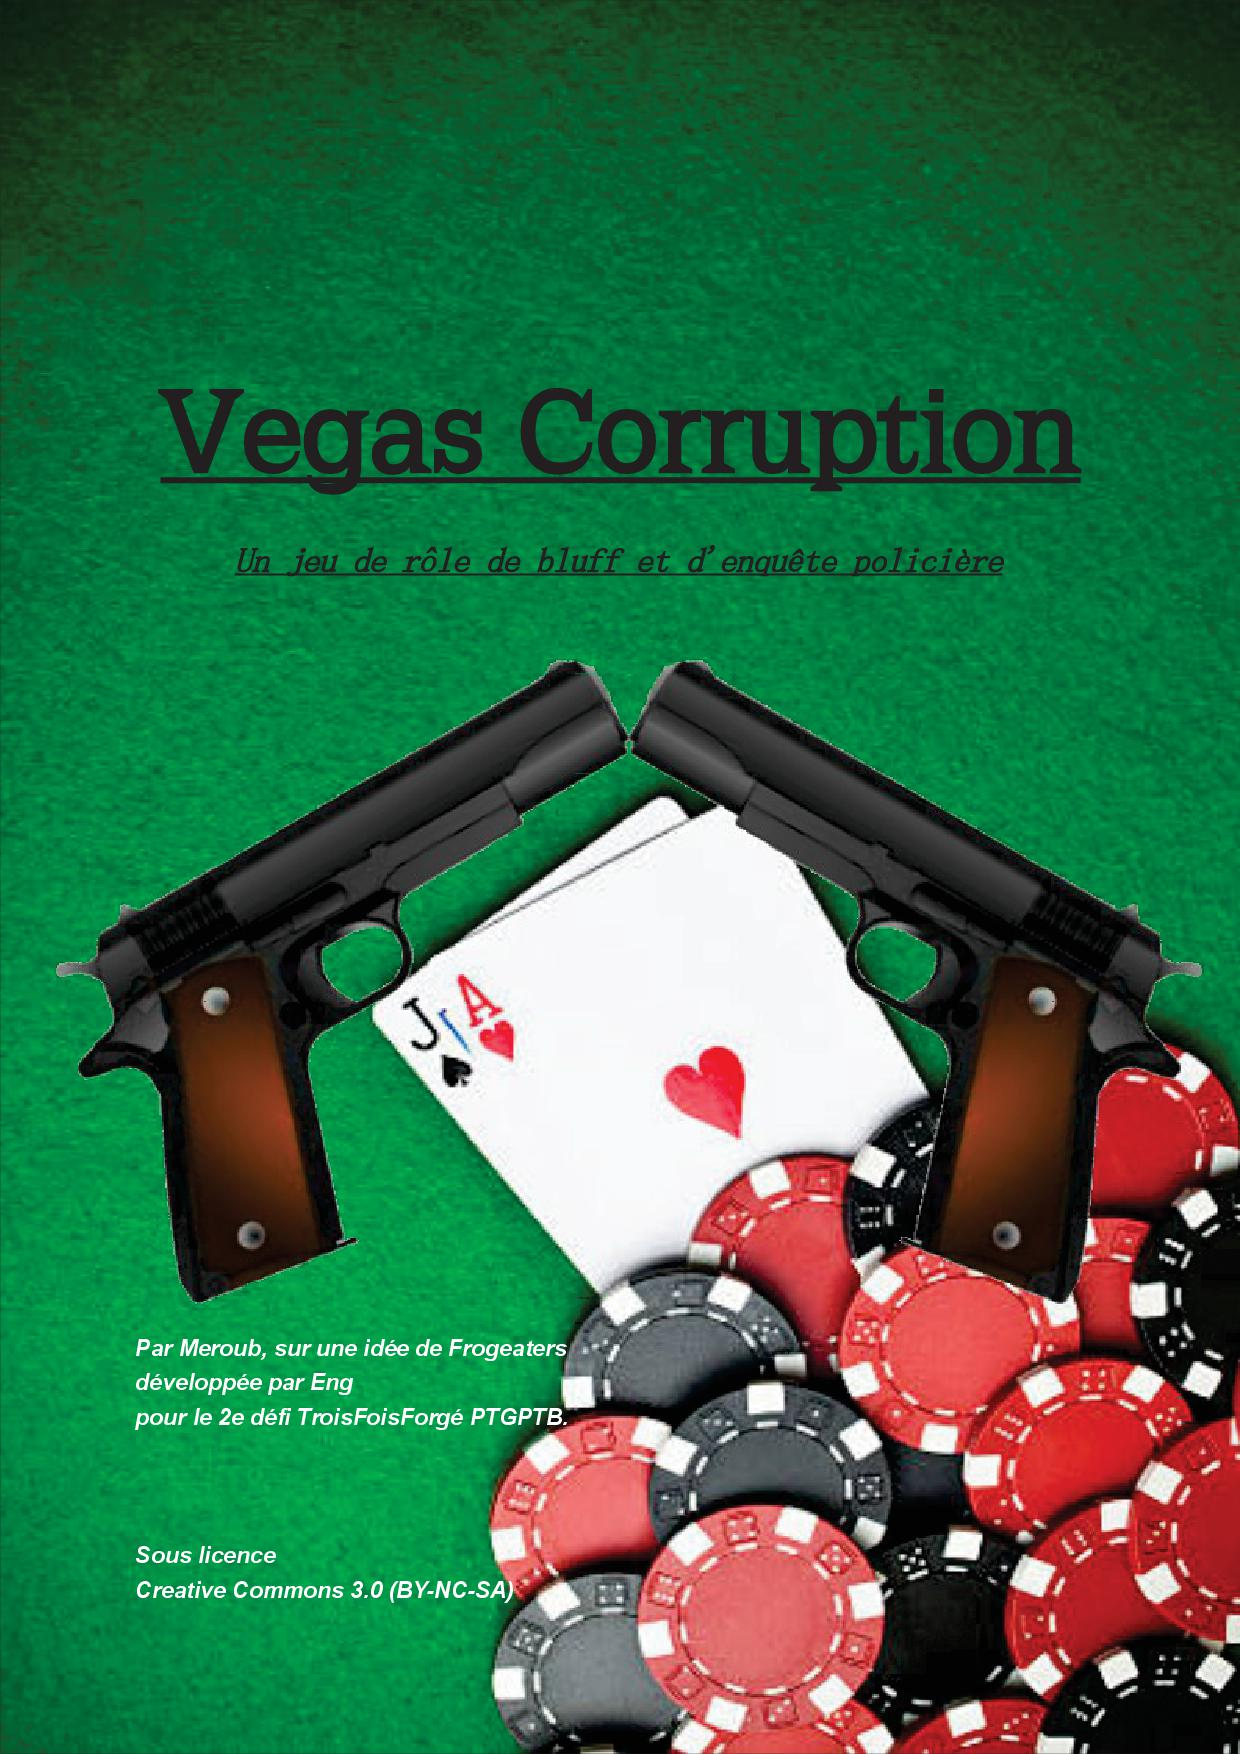 Vegas corruption